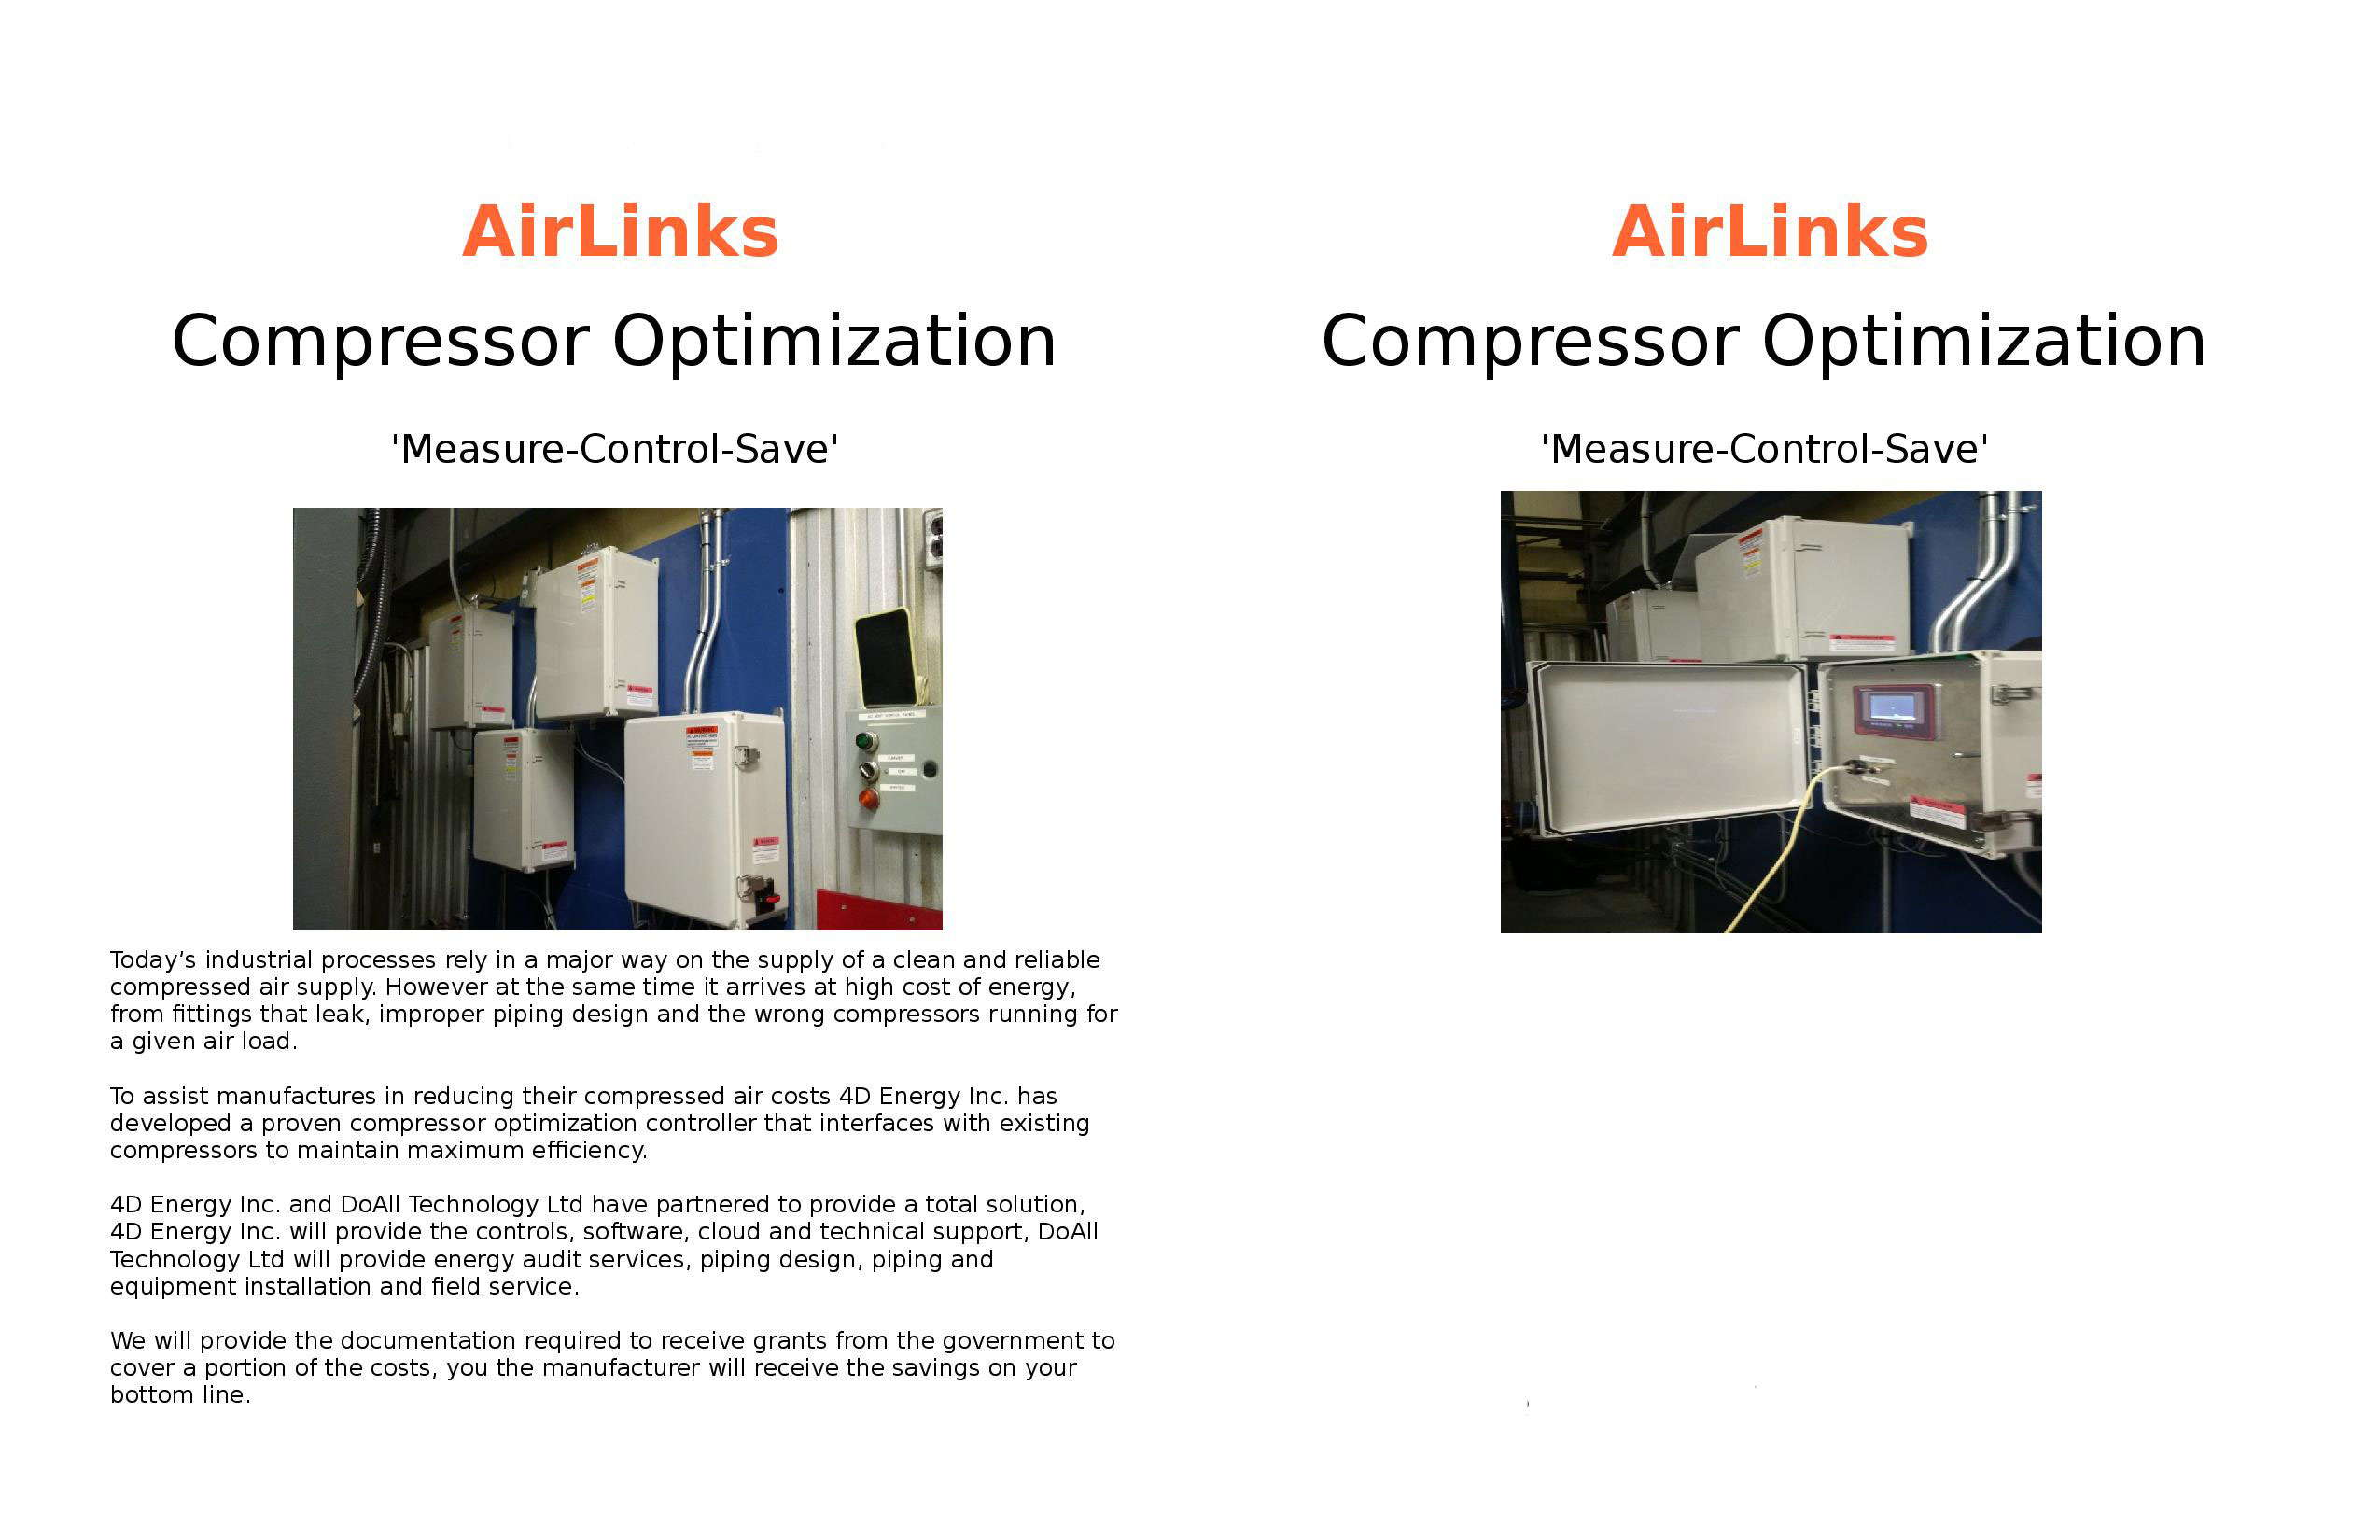 AirLink - Compressor Optimization